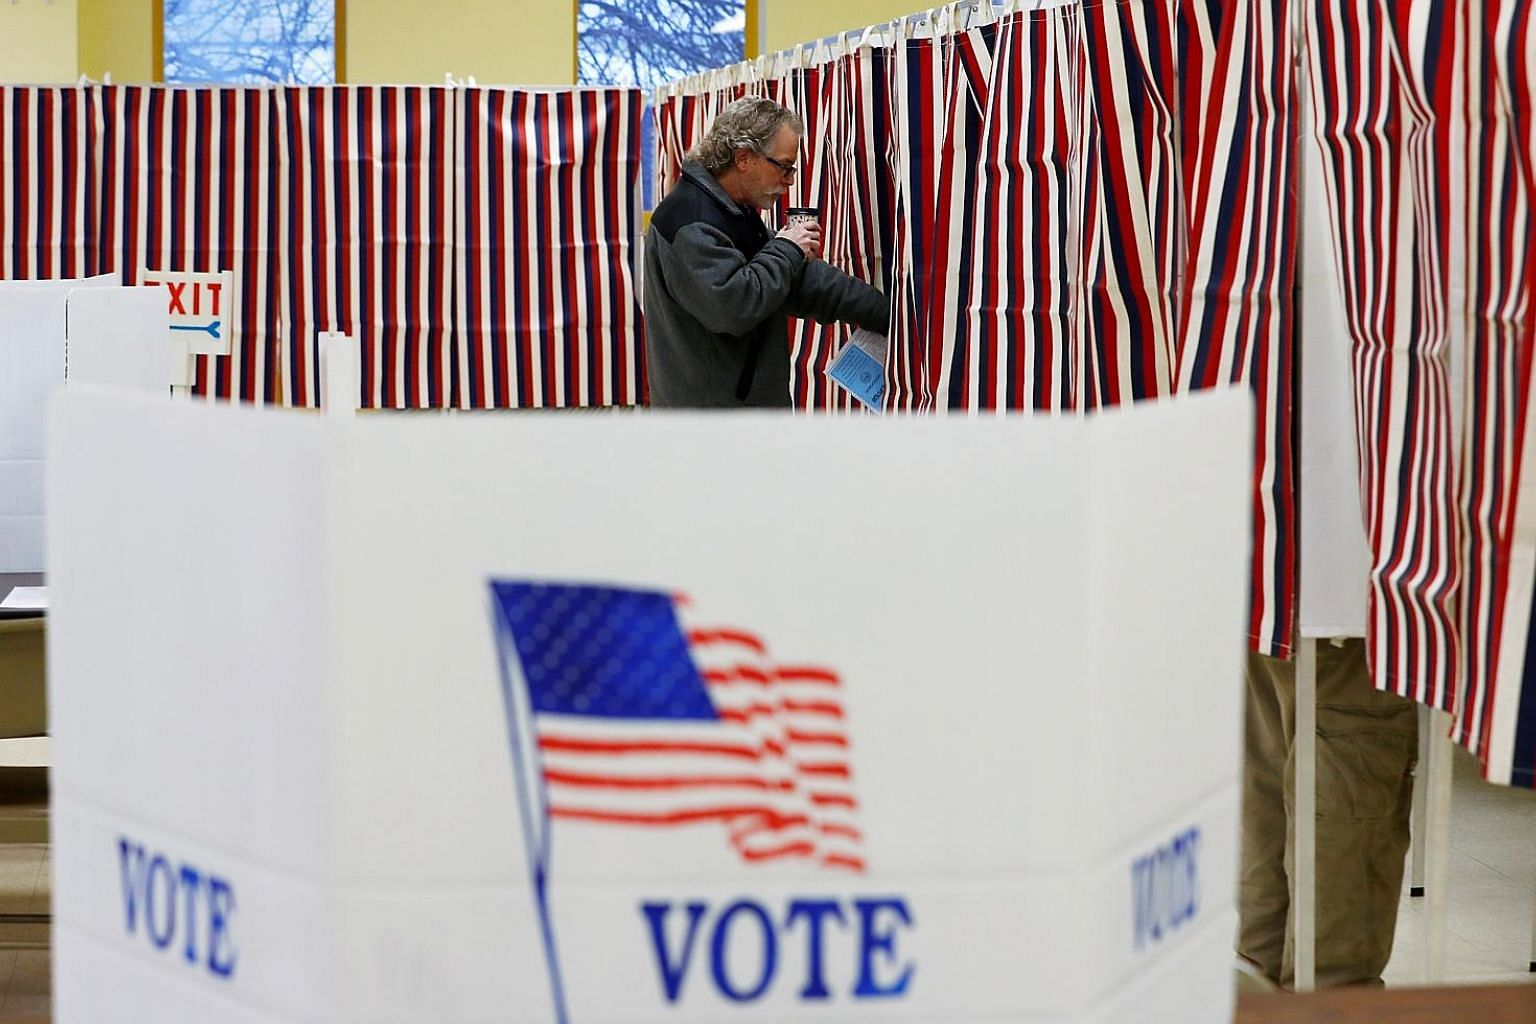 A voting station for the New Hampshire primary last month. Facebook and other big tech firms have been working to avoid a repeat of the 2016 election, when their platforms were overrun by Russian trolls. But US partisan groups have now borrowed Russi